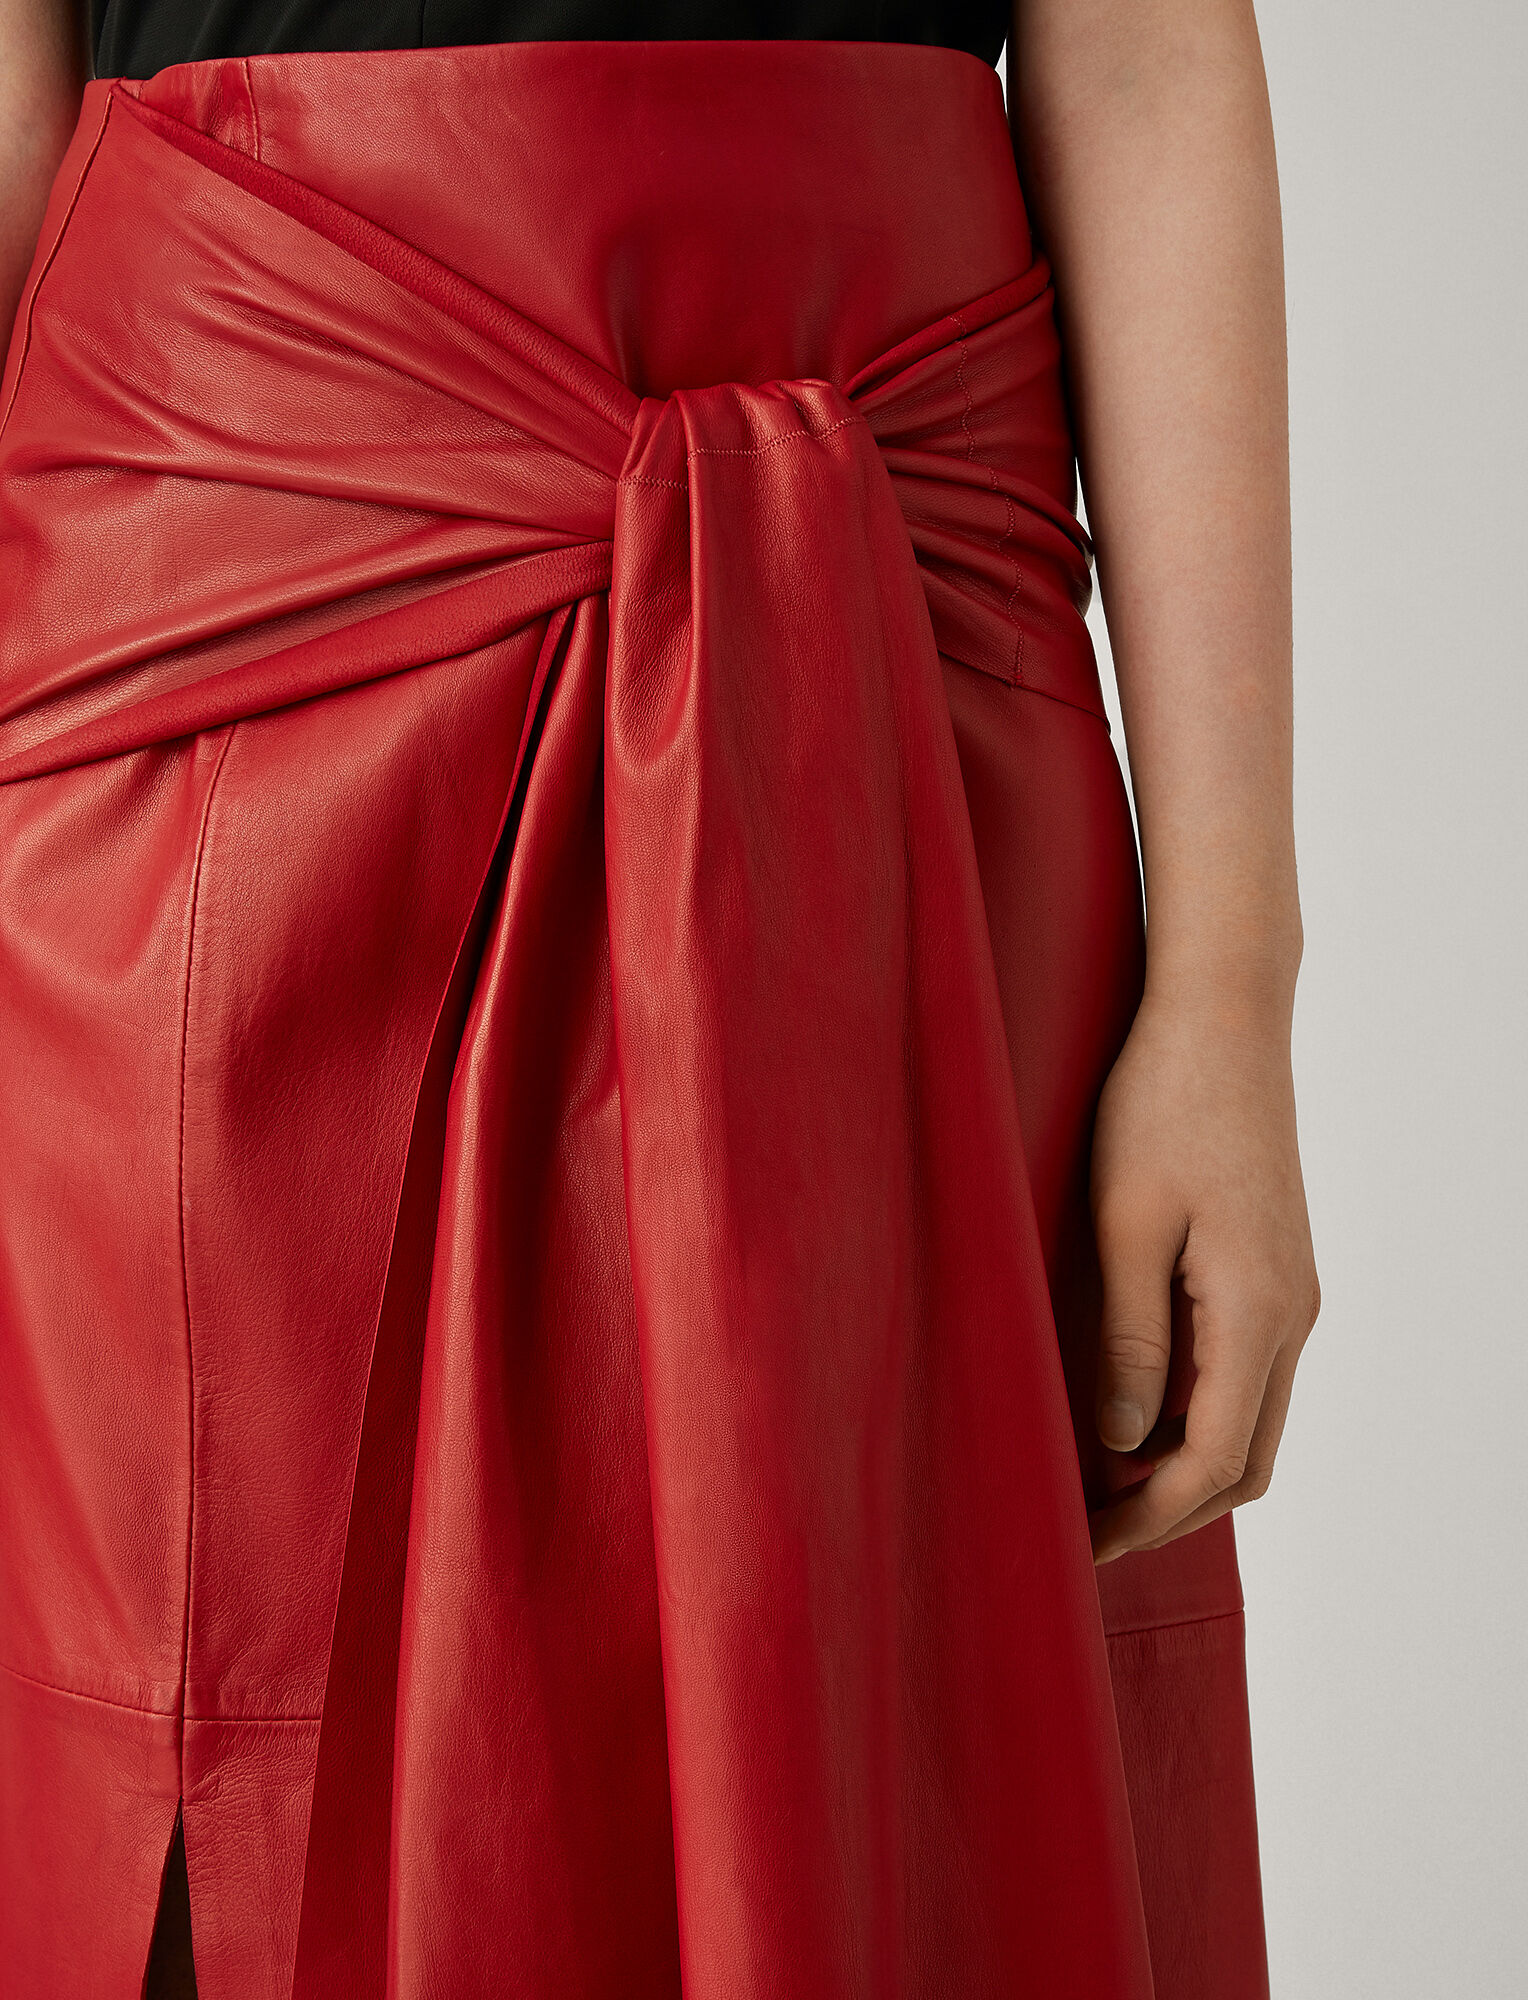 Joseph, Renne Leather Skirt, in RUBY